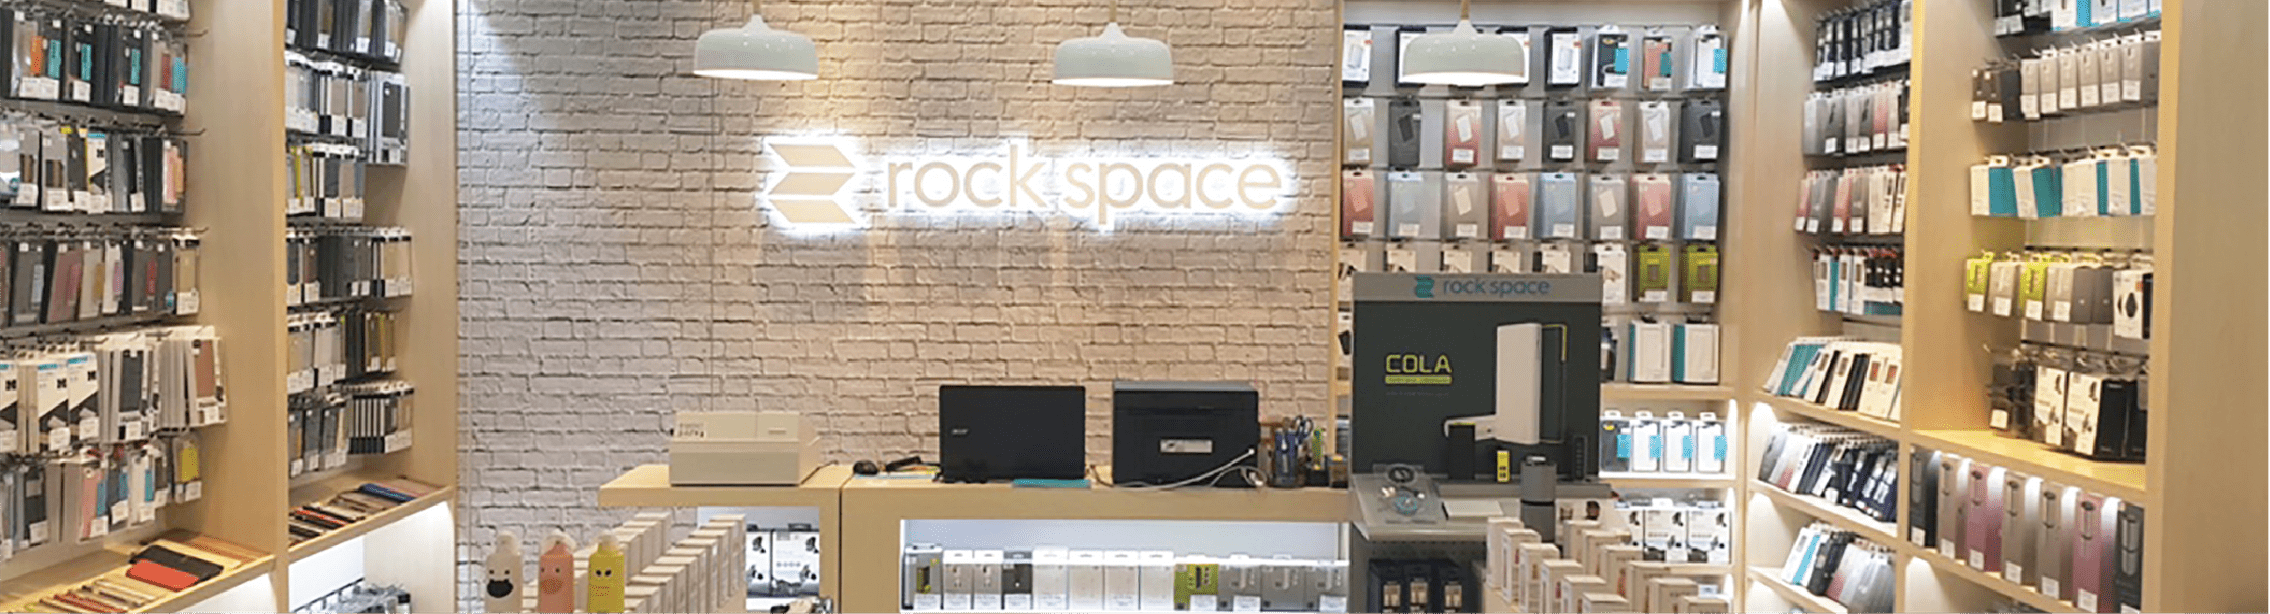 REGO Communication Sdn Bhd - Rock Space | About Us